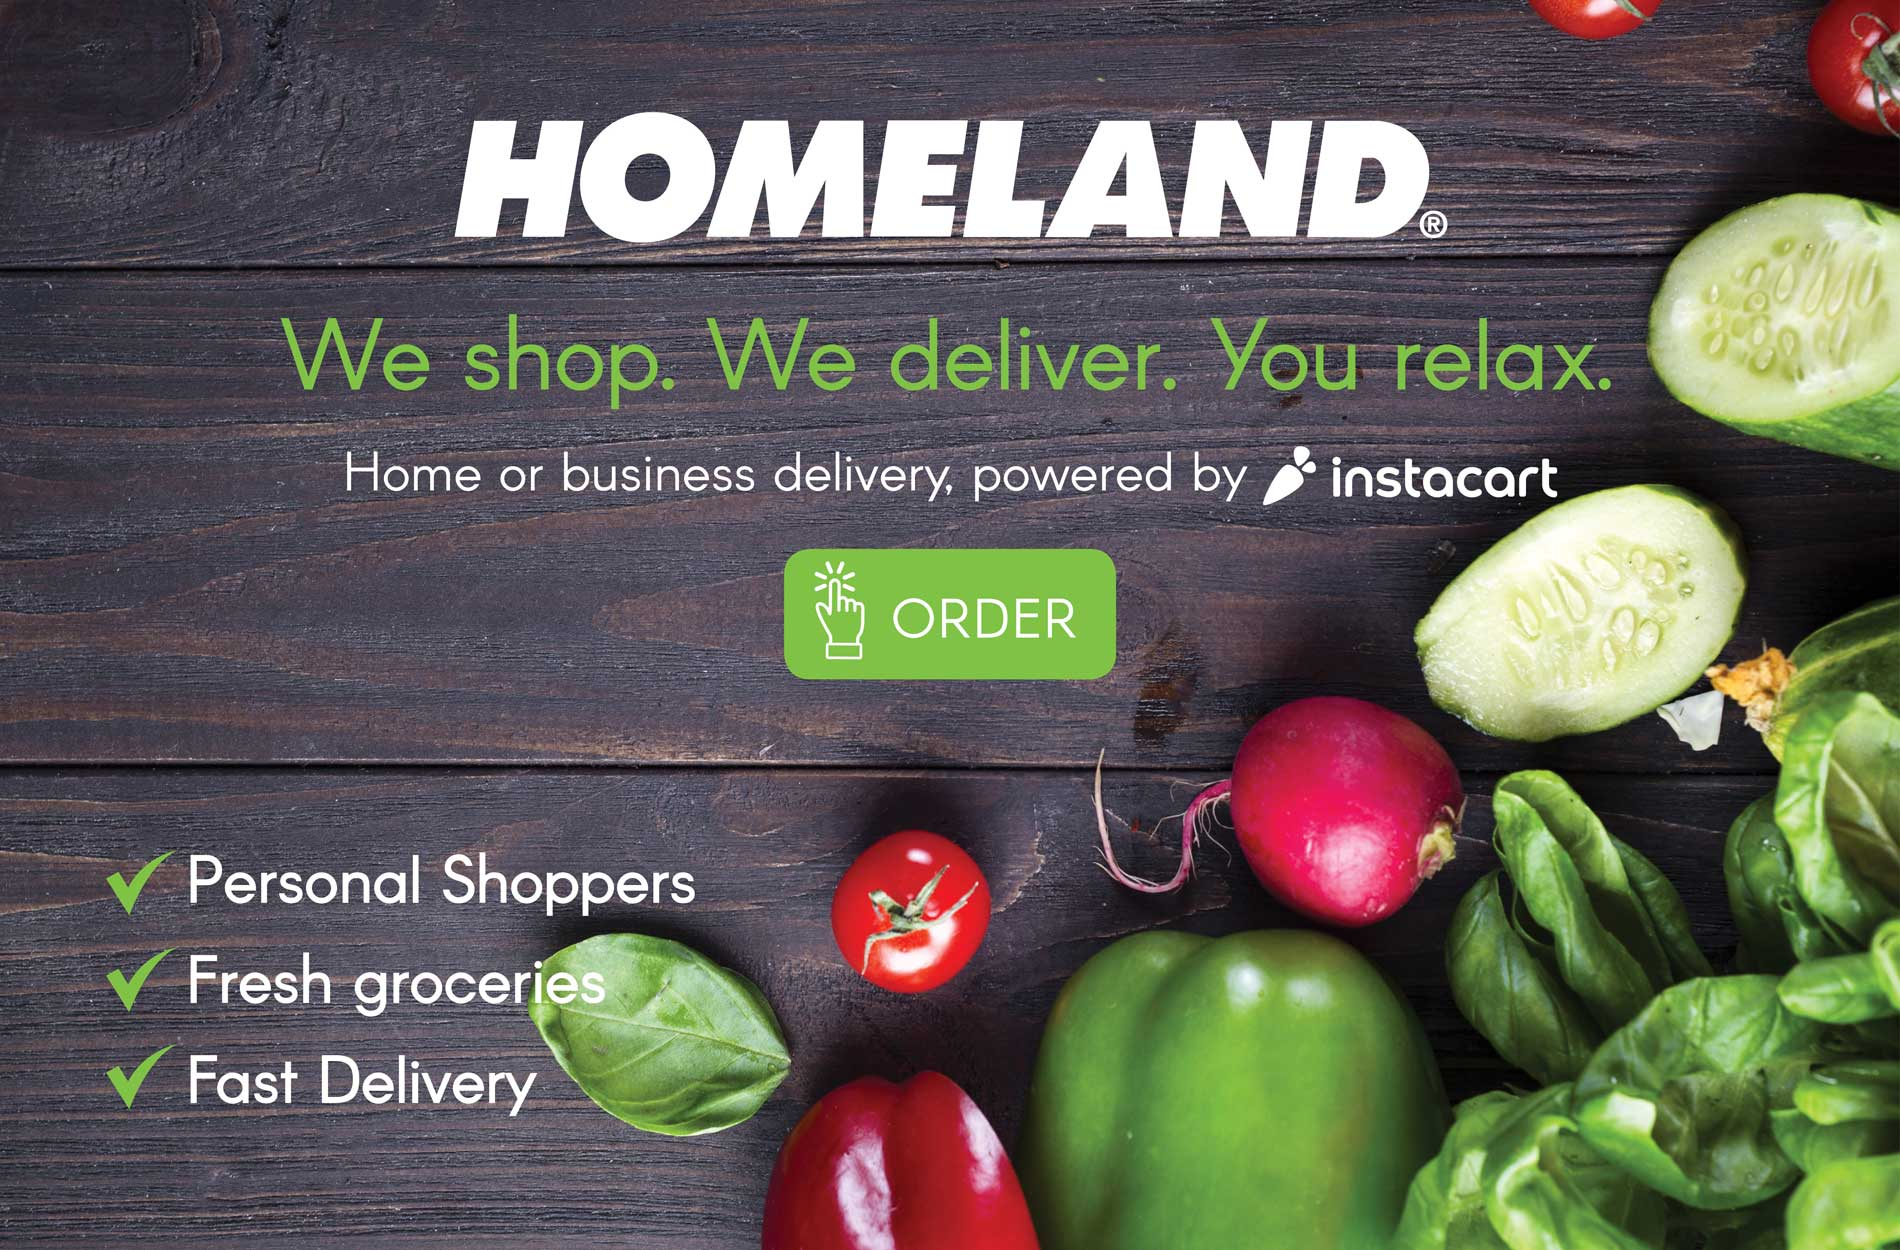 Online Shopping with Instacart